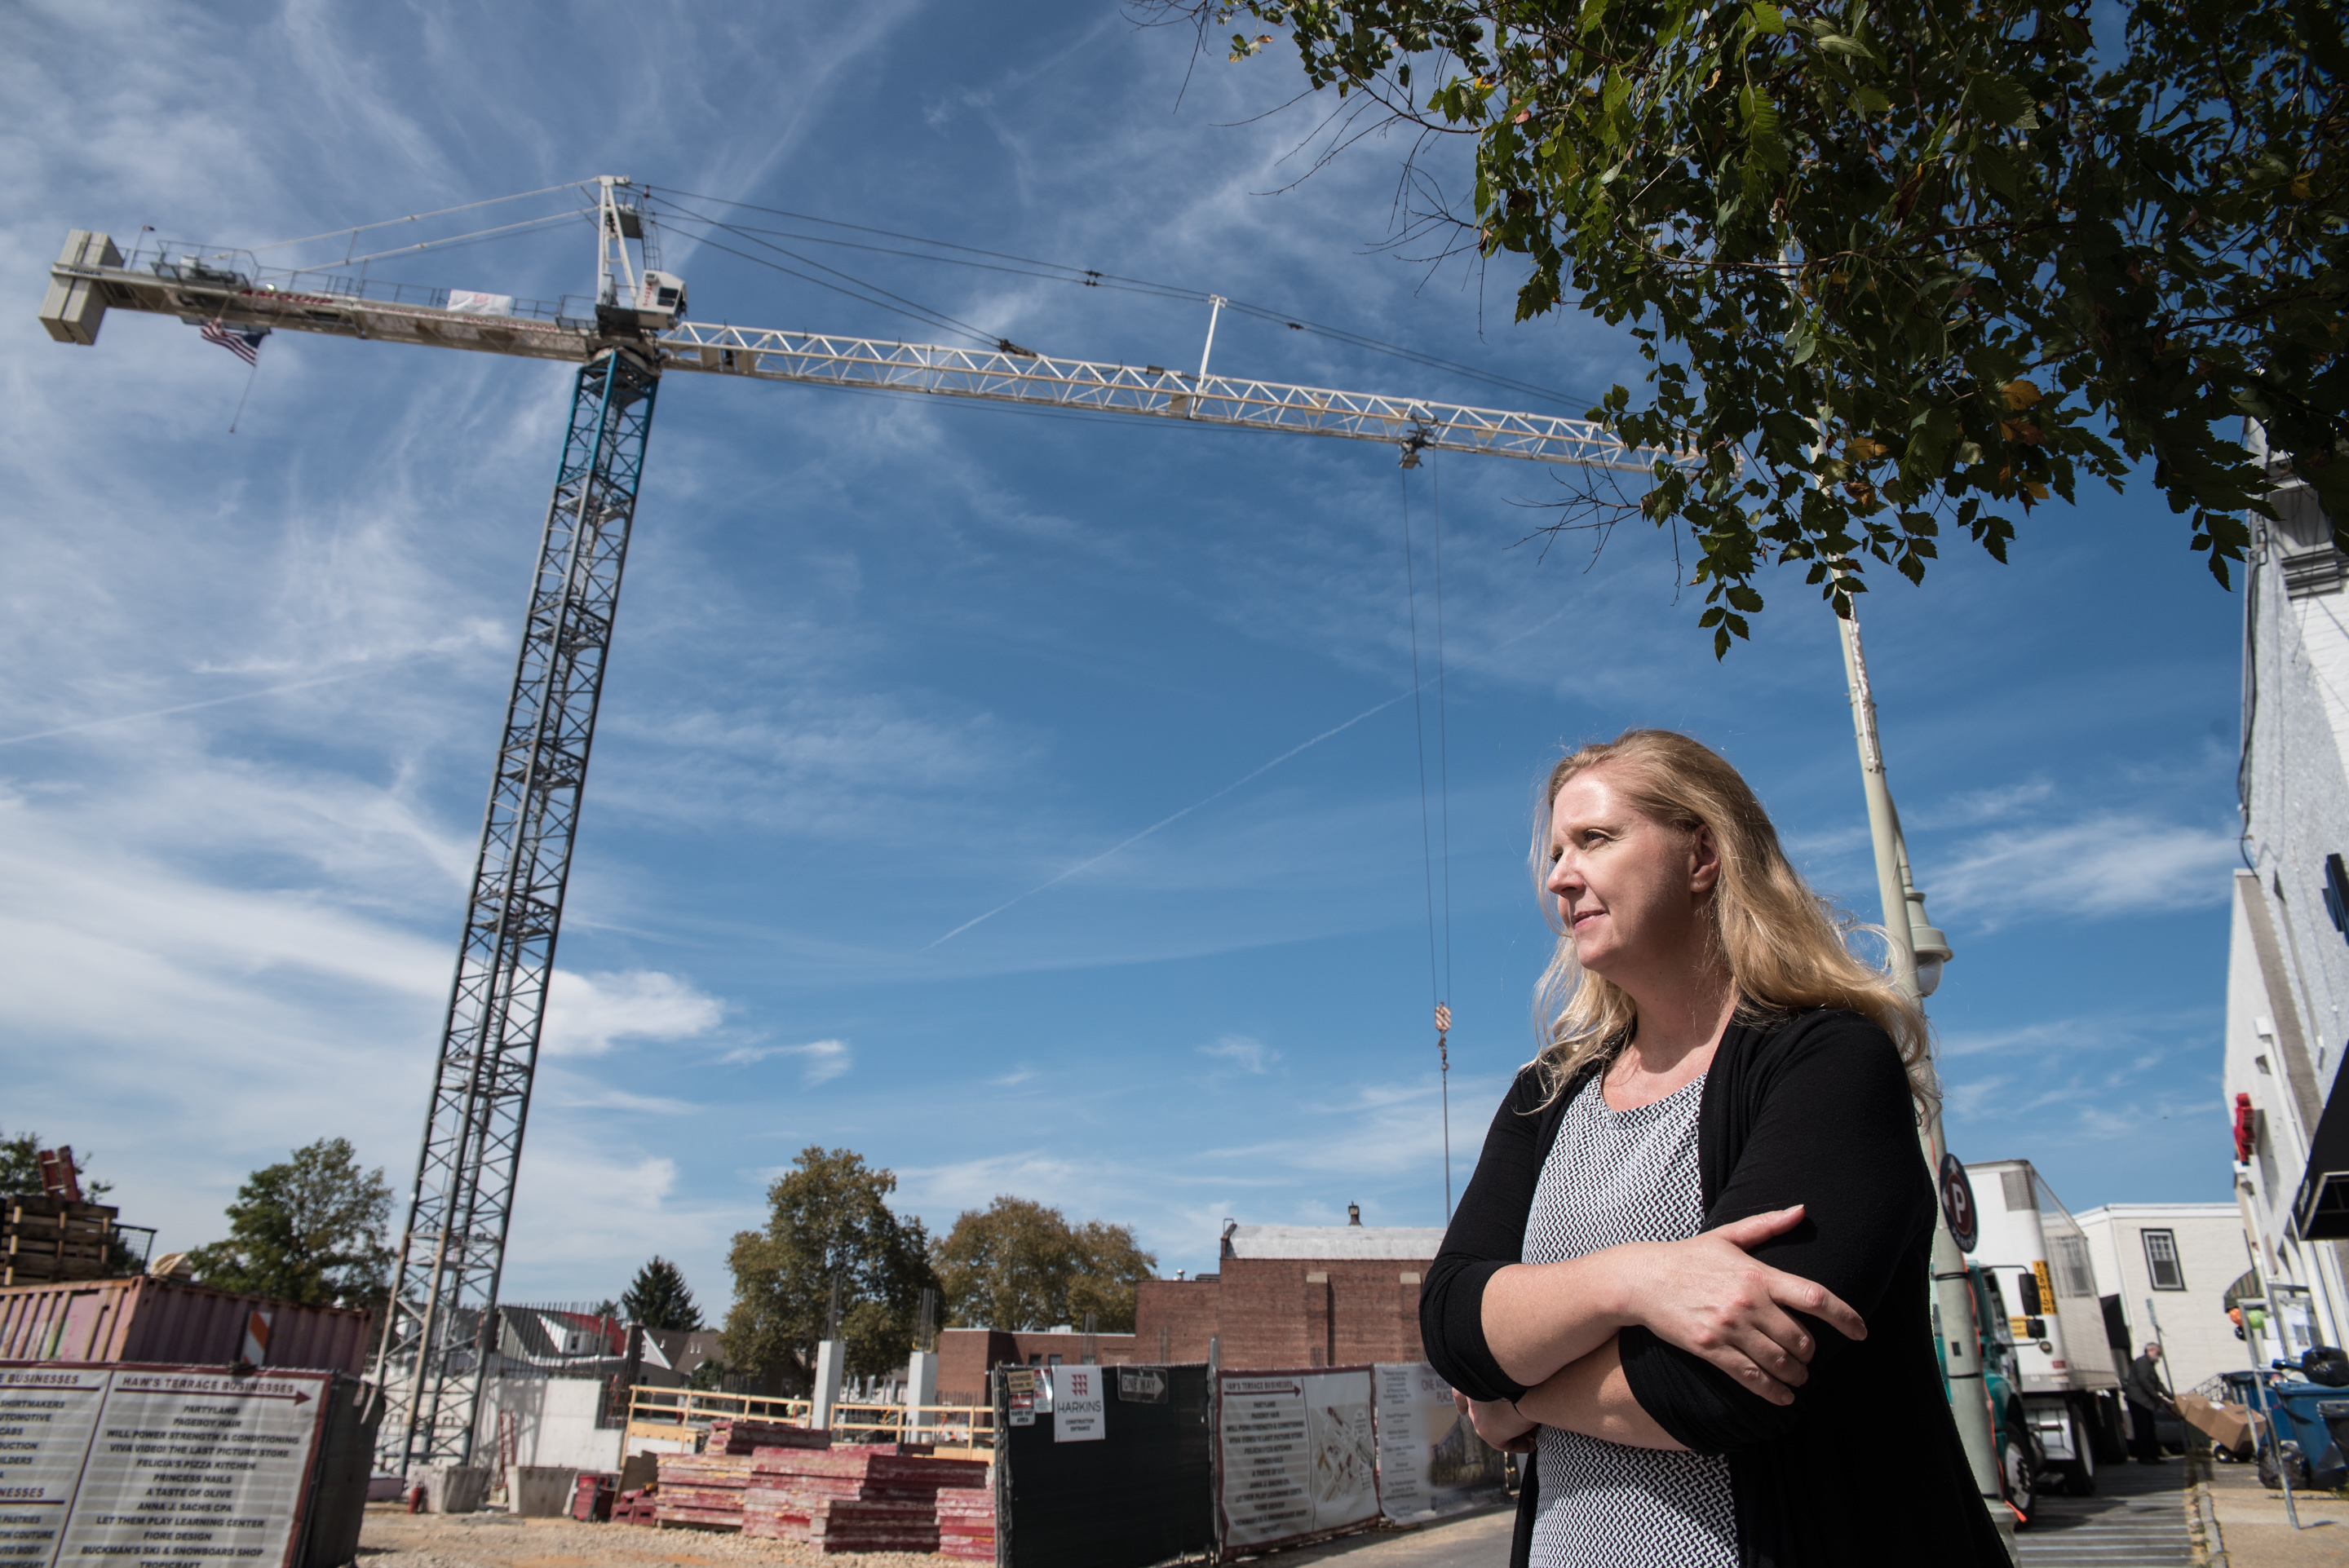 Carrie Kohs surveys the construction site for a controversial mixed-usage building just off Lancaster Avenue in Ardmore. As a local business owner and activist in the business community, she is in favor of the development other local business owners and residents have opposed. Friday, September 22, 2017, Ardmore, Pennsylvania.